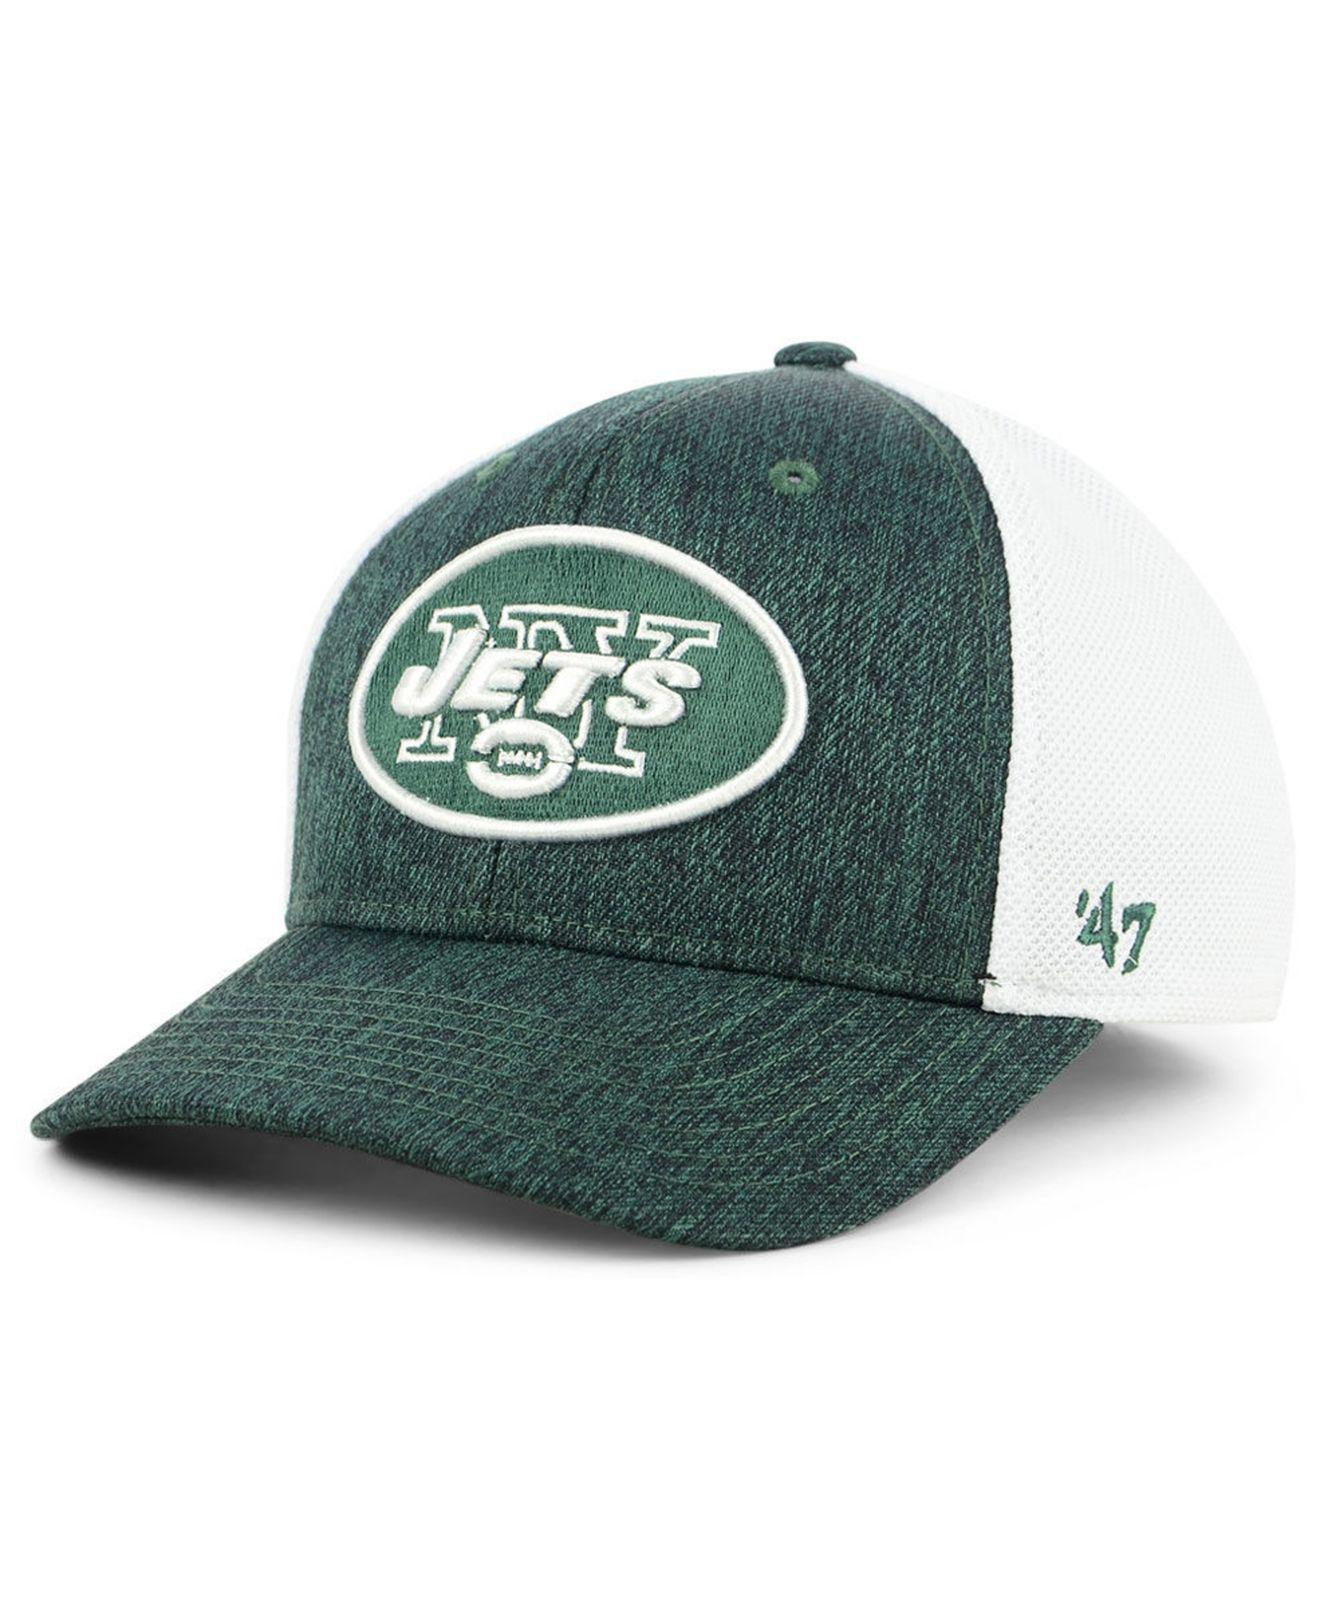 huge selection of 5fb1f bbd25 Lyst - 47 Brand New York Jets Hazy Flex Contender Stretch Fitted Cap ...